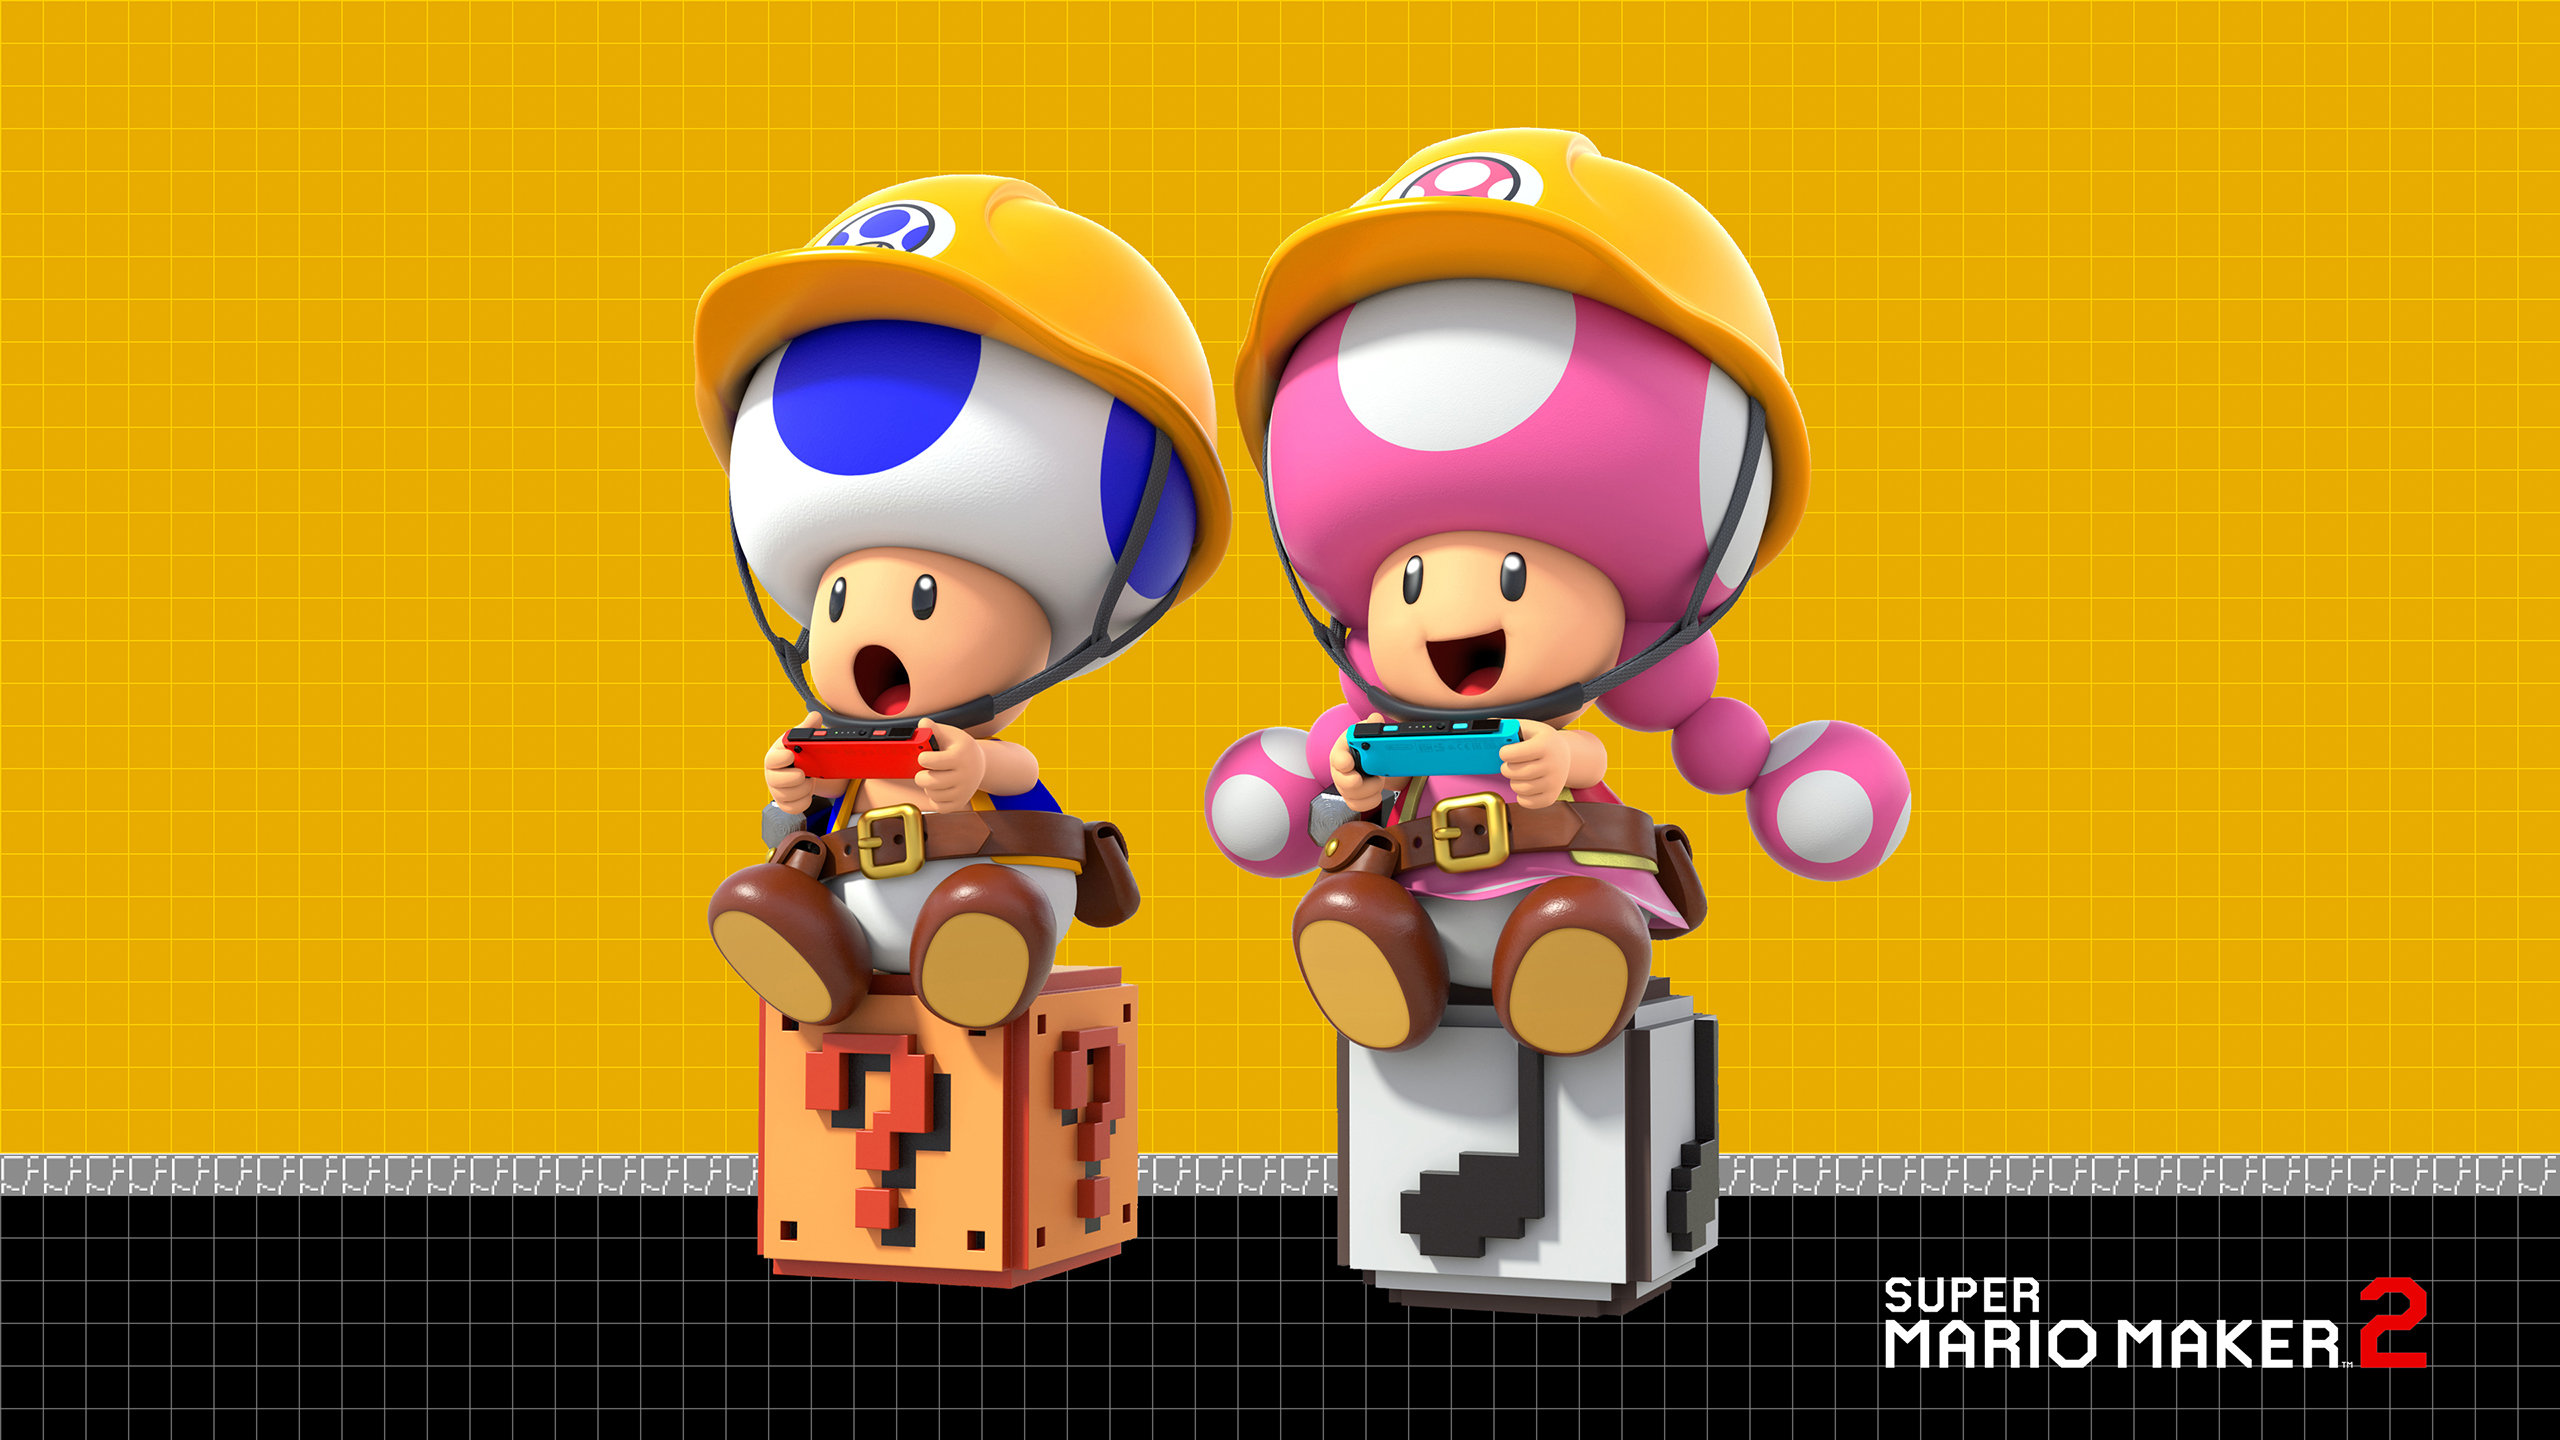 Super Mario Maker 2 Toad And Toadette Wallpaper Cat With Monocle